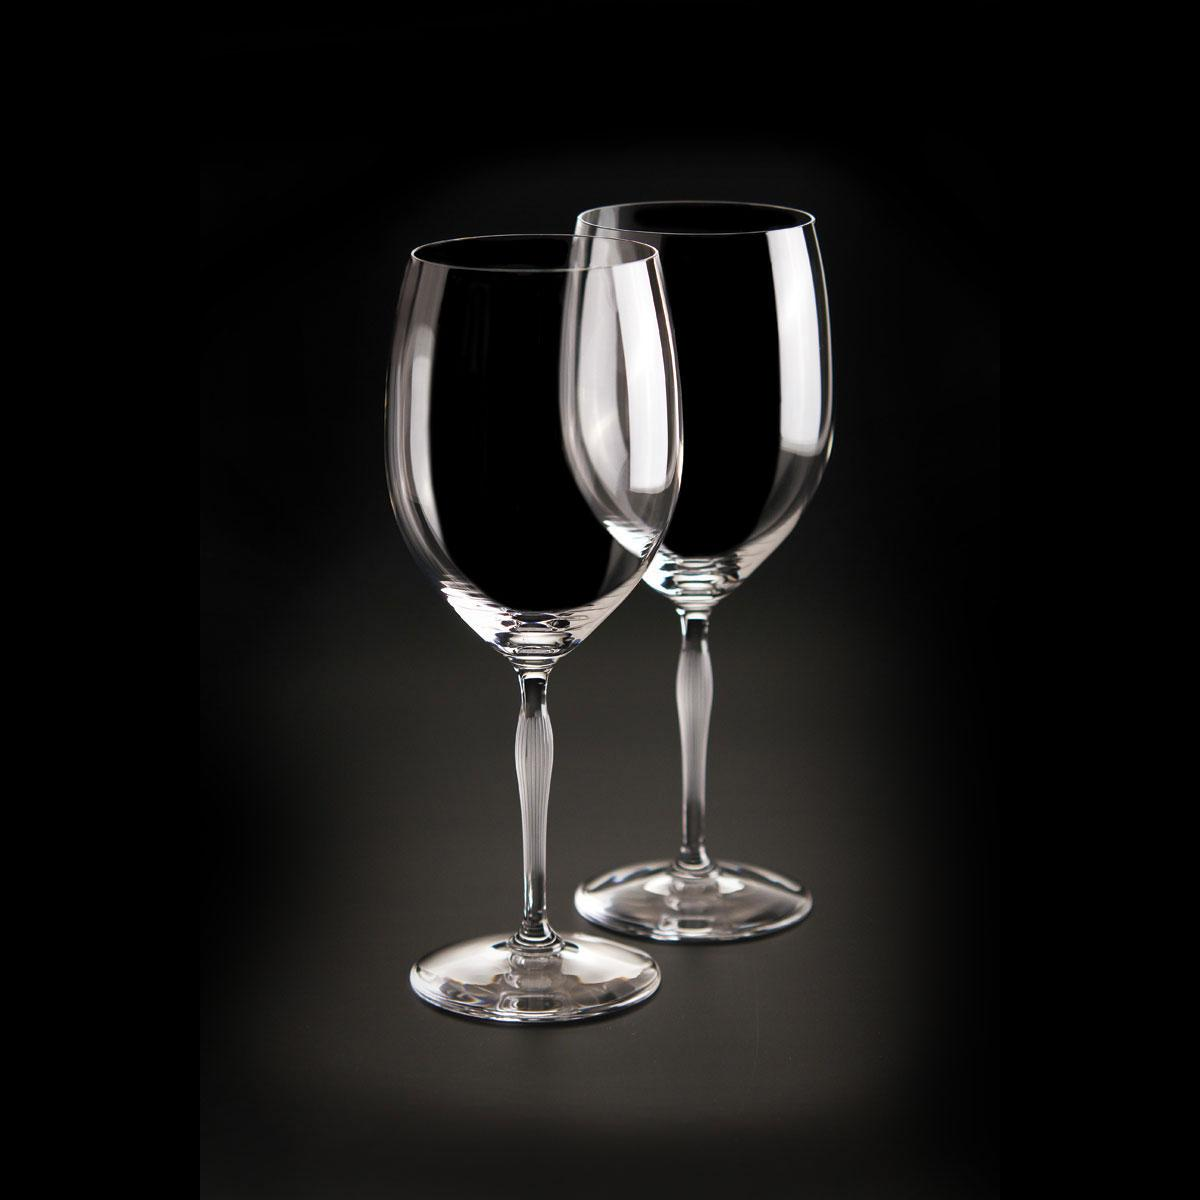 Lalique Crystal, 100 Points Bordeaux Crystal Glasses By James Suckling, Pair